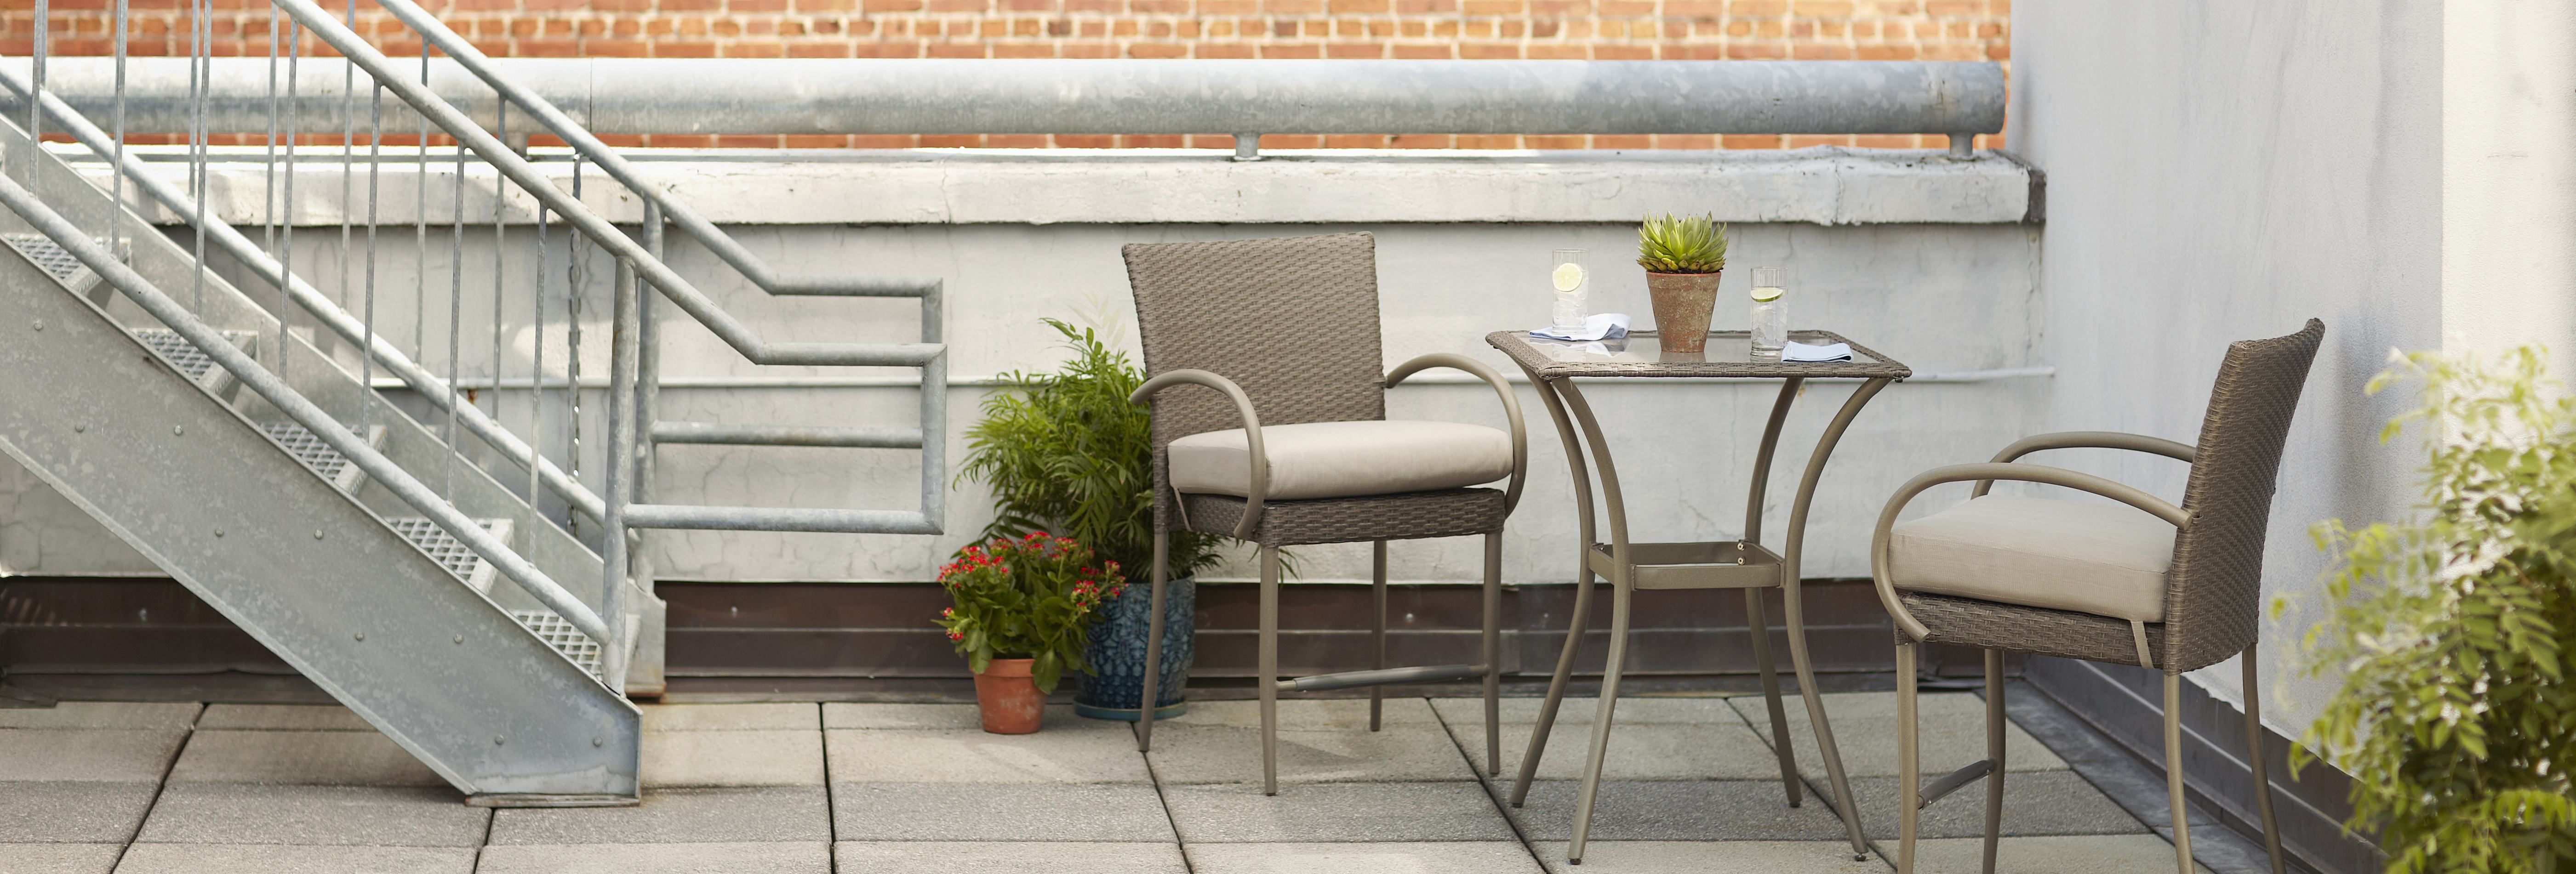 Posada 3 piece Balcony Bistro Set.  Available at The Home Depot and homedepot.com